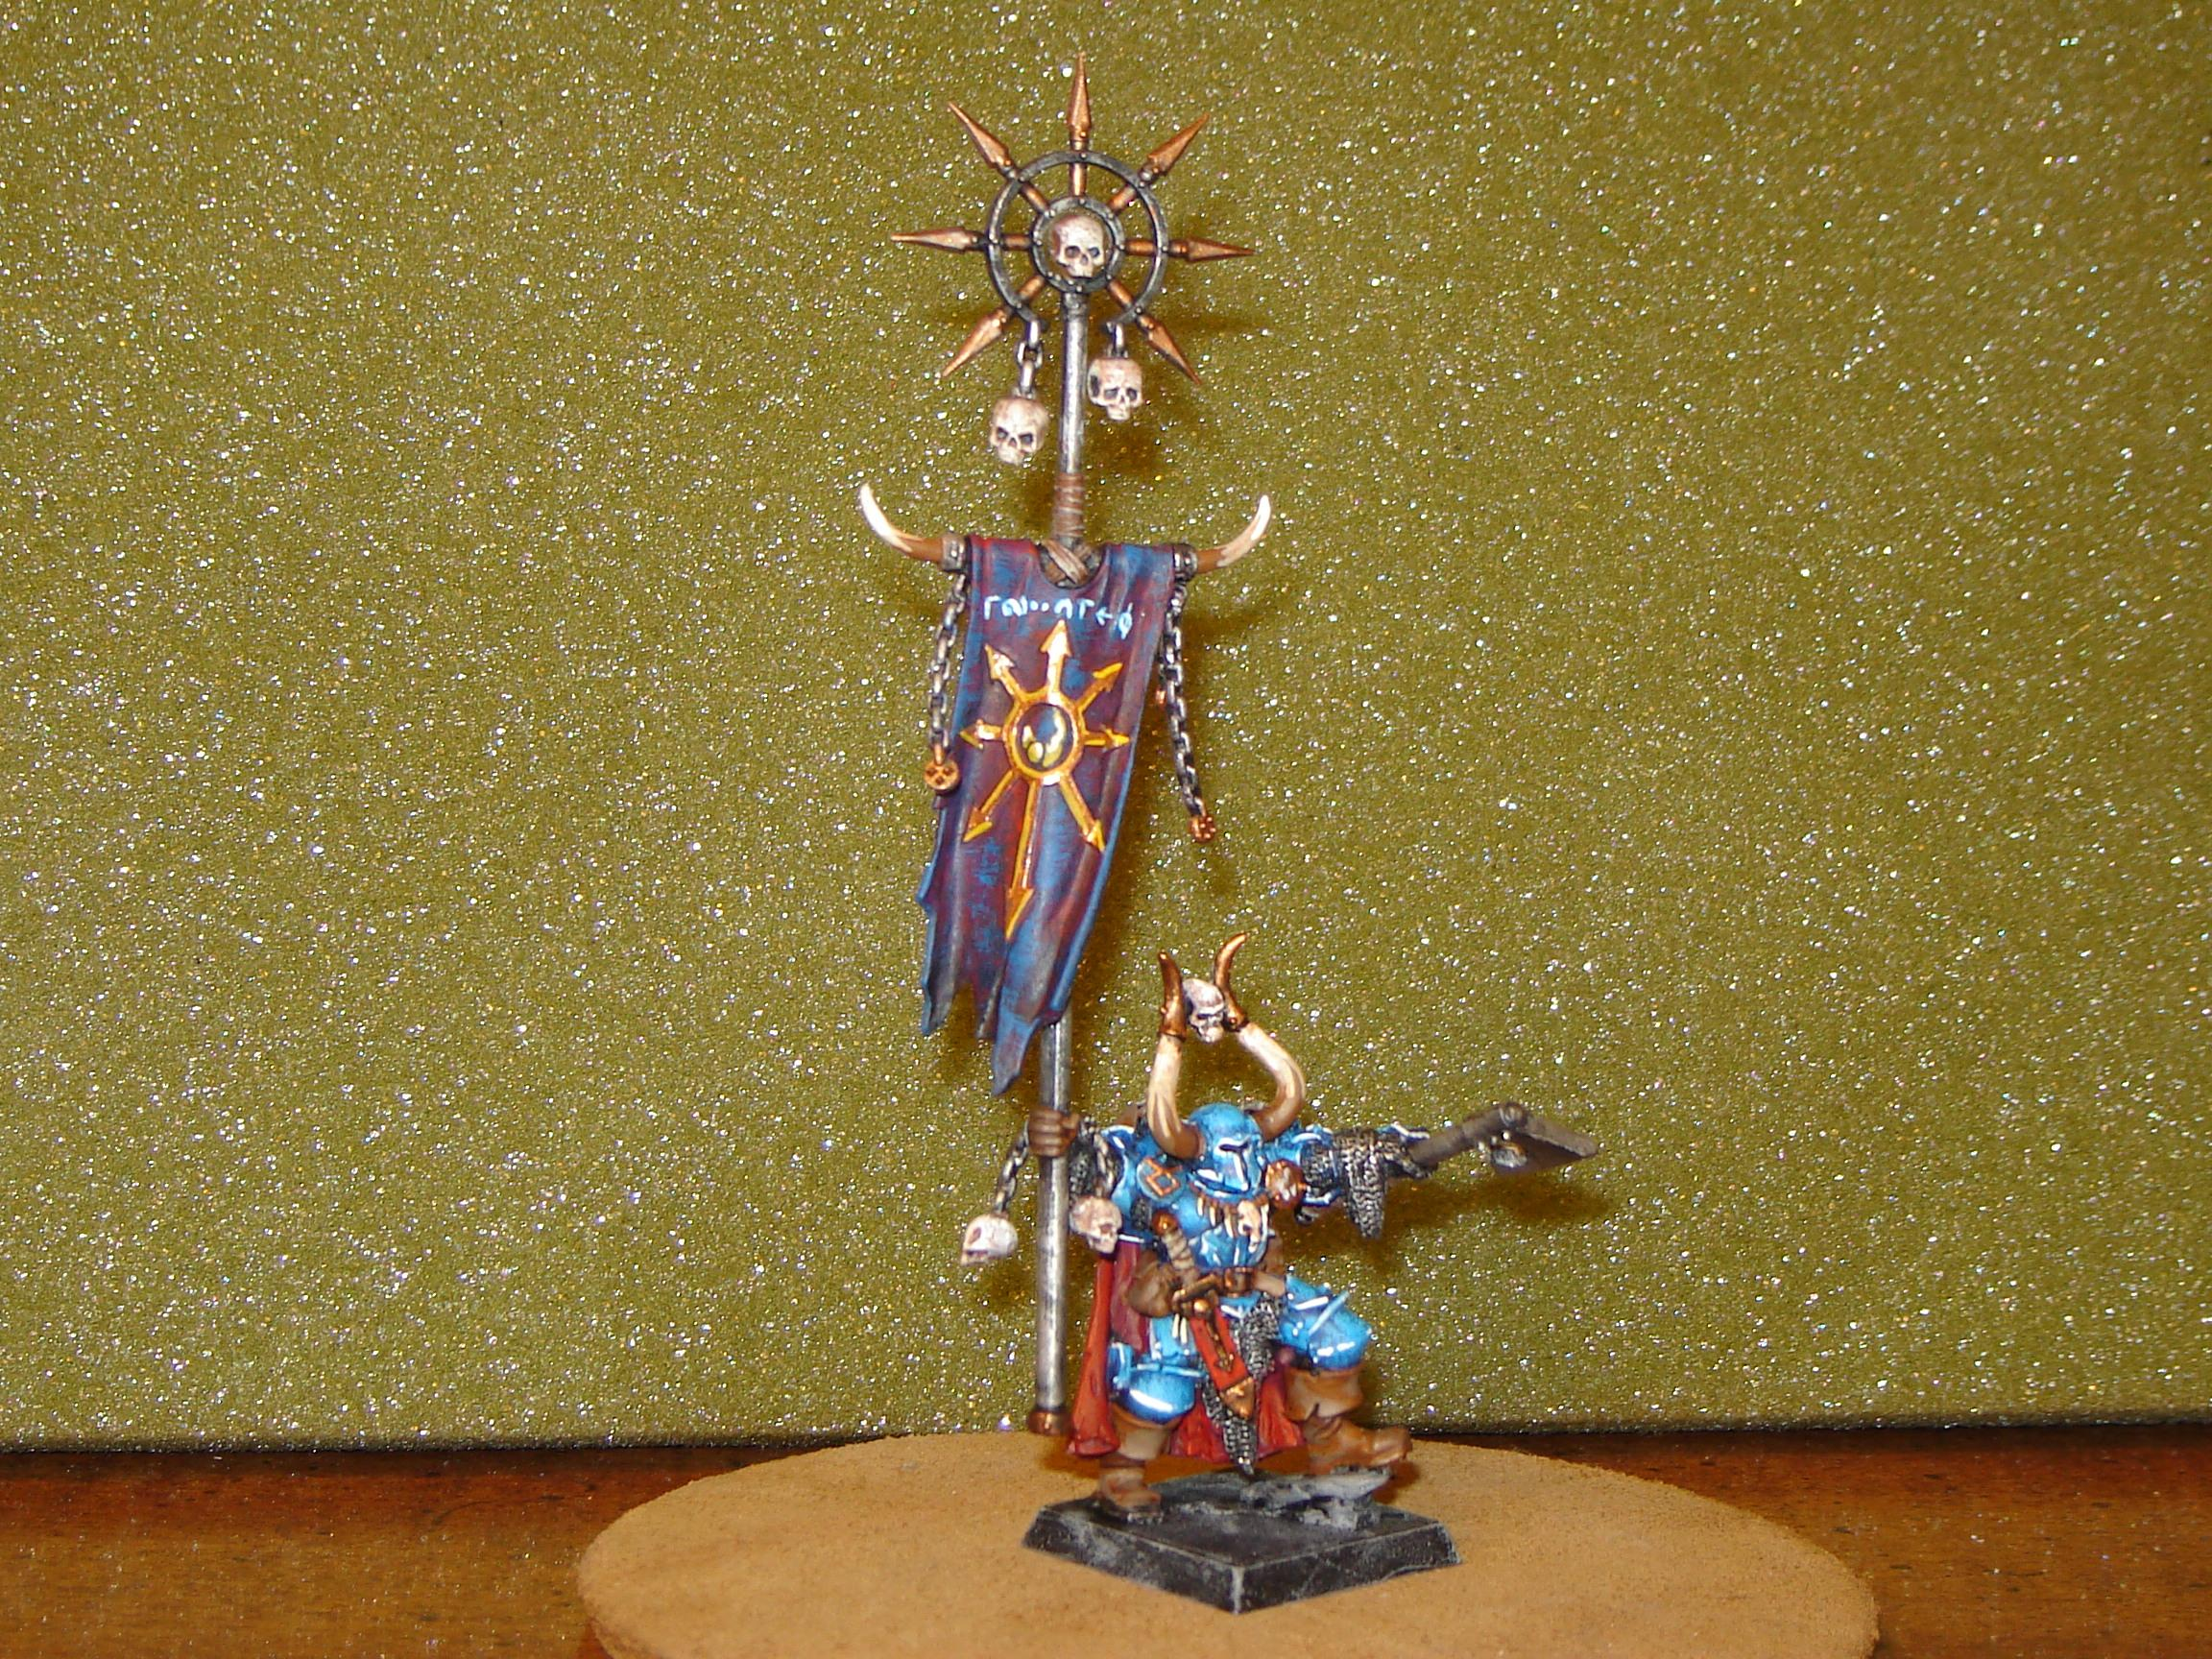 This will serve as by Battle Standard Bearer